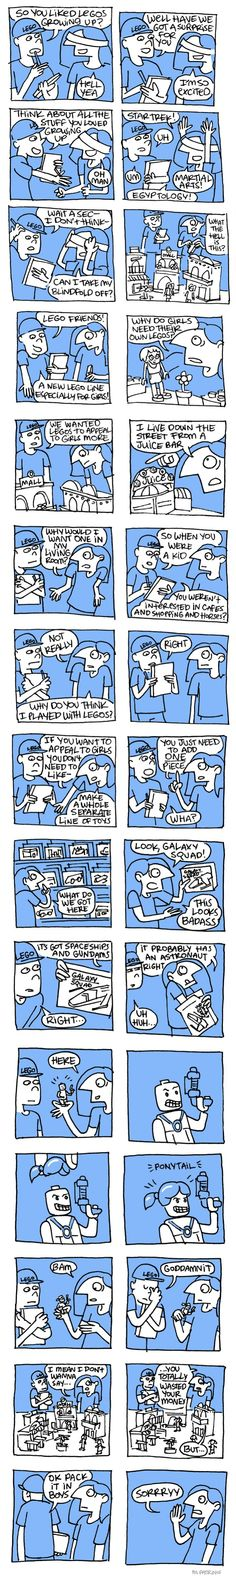 LEGO needs to see this comic. Immediately. Feminism gender equality for children